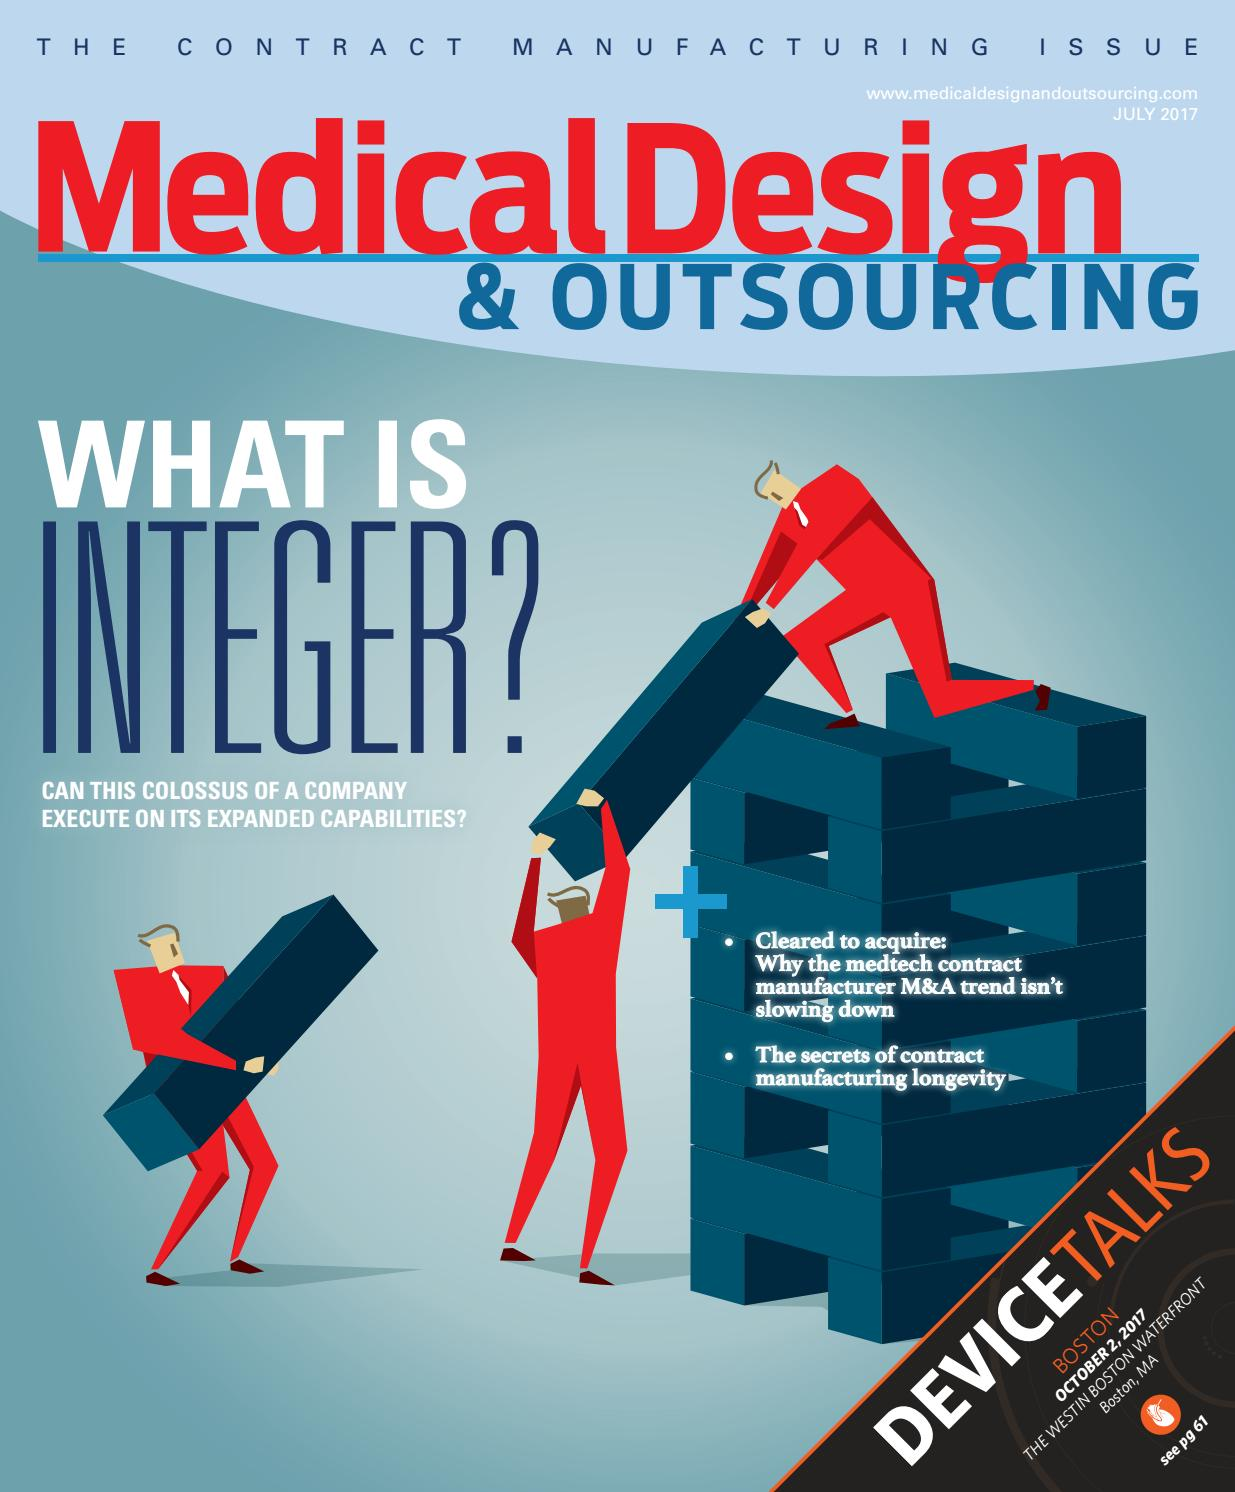 MEDICAL DESIGN & OUTSOURCING - July 2017 by WTWH Media LLC - issuu